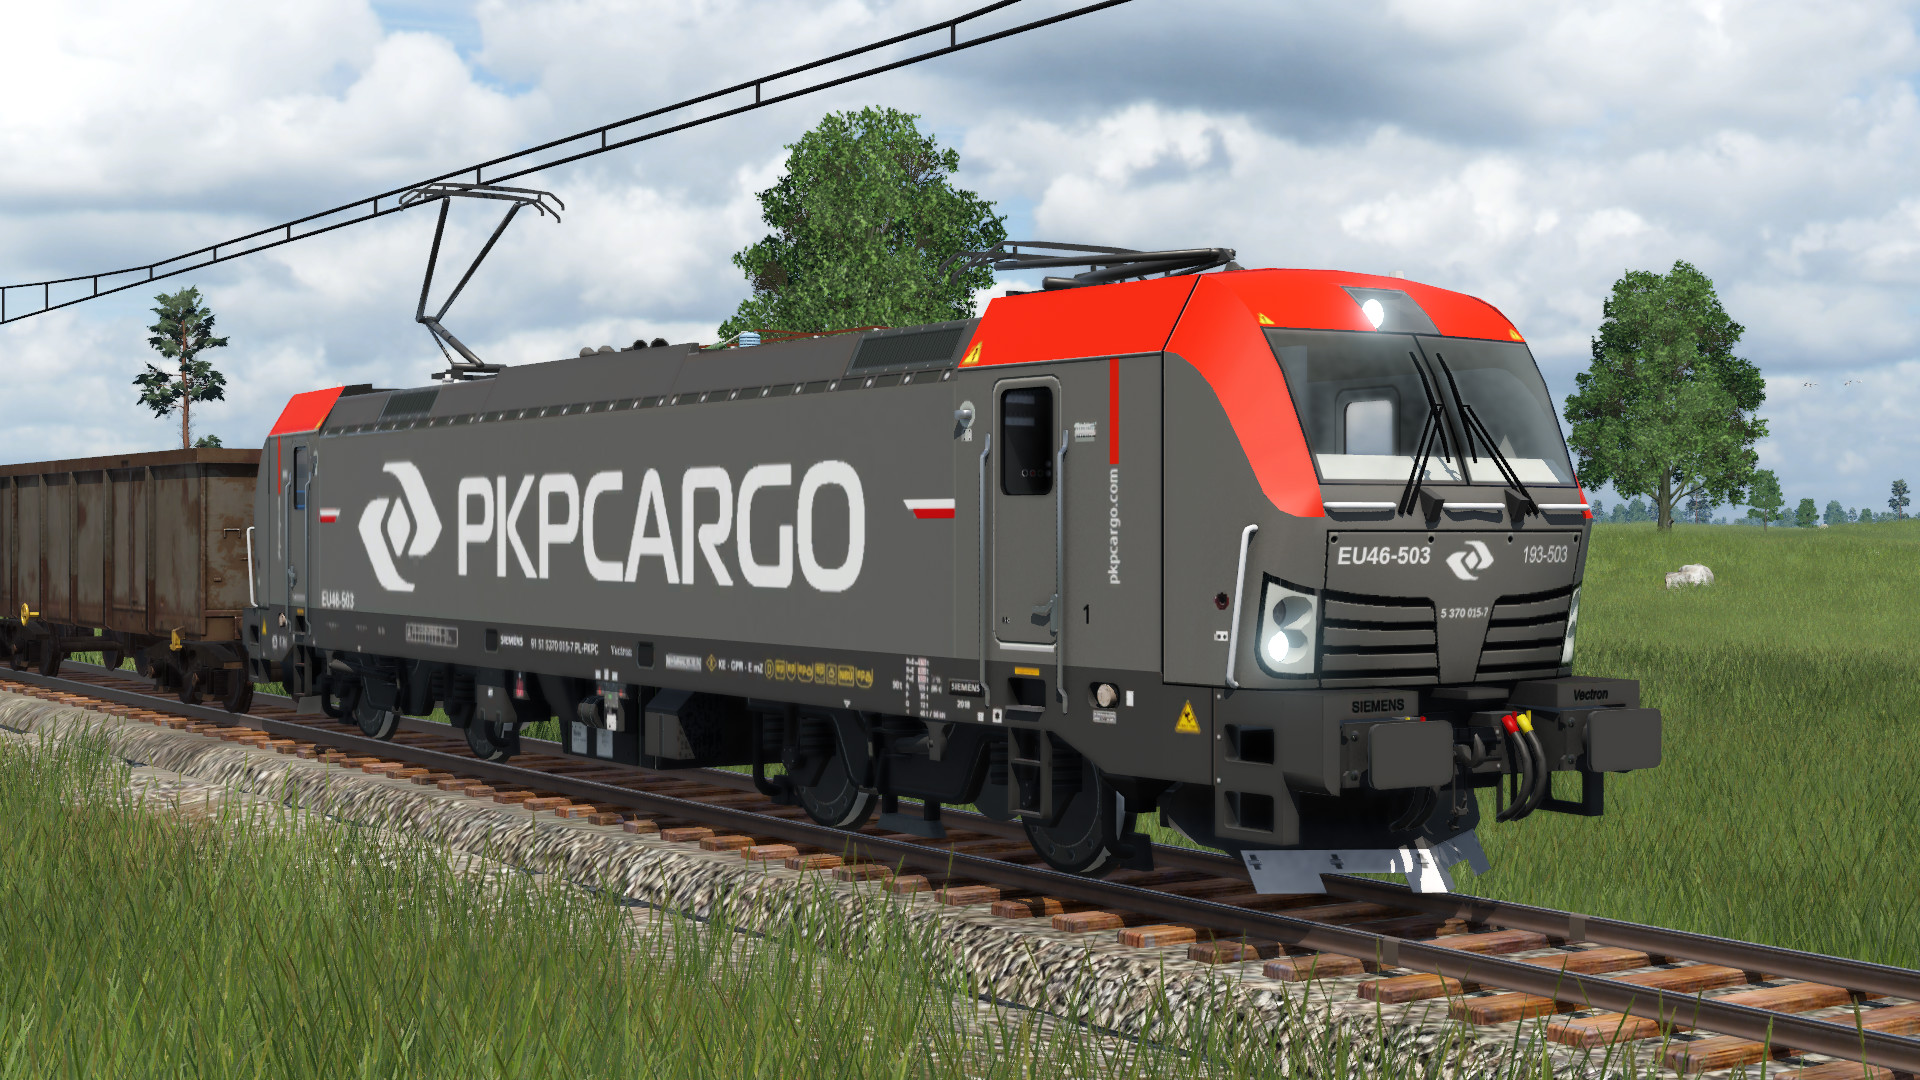 Transport Fever 2 - PKP Cargo EU46 Siemnes Vectron